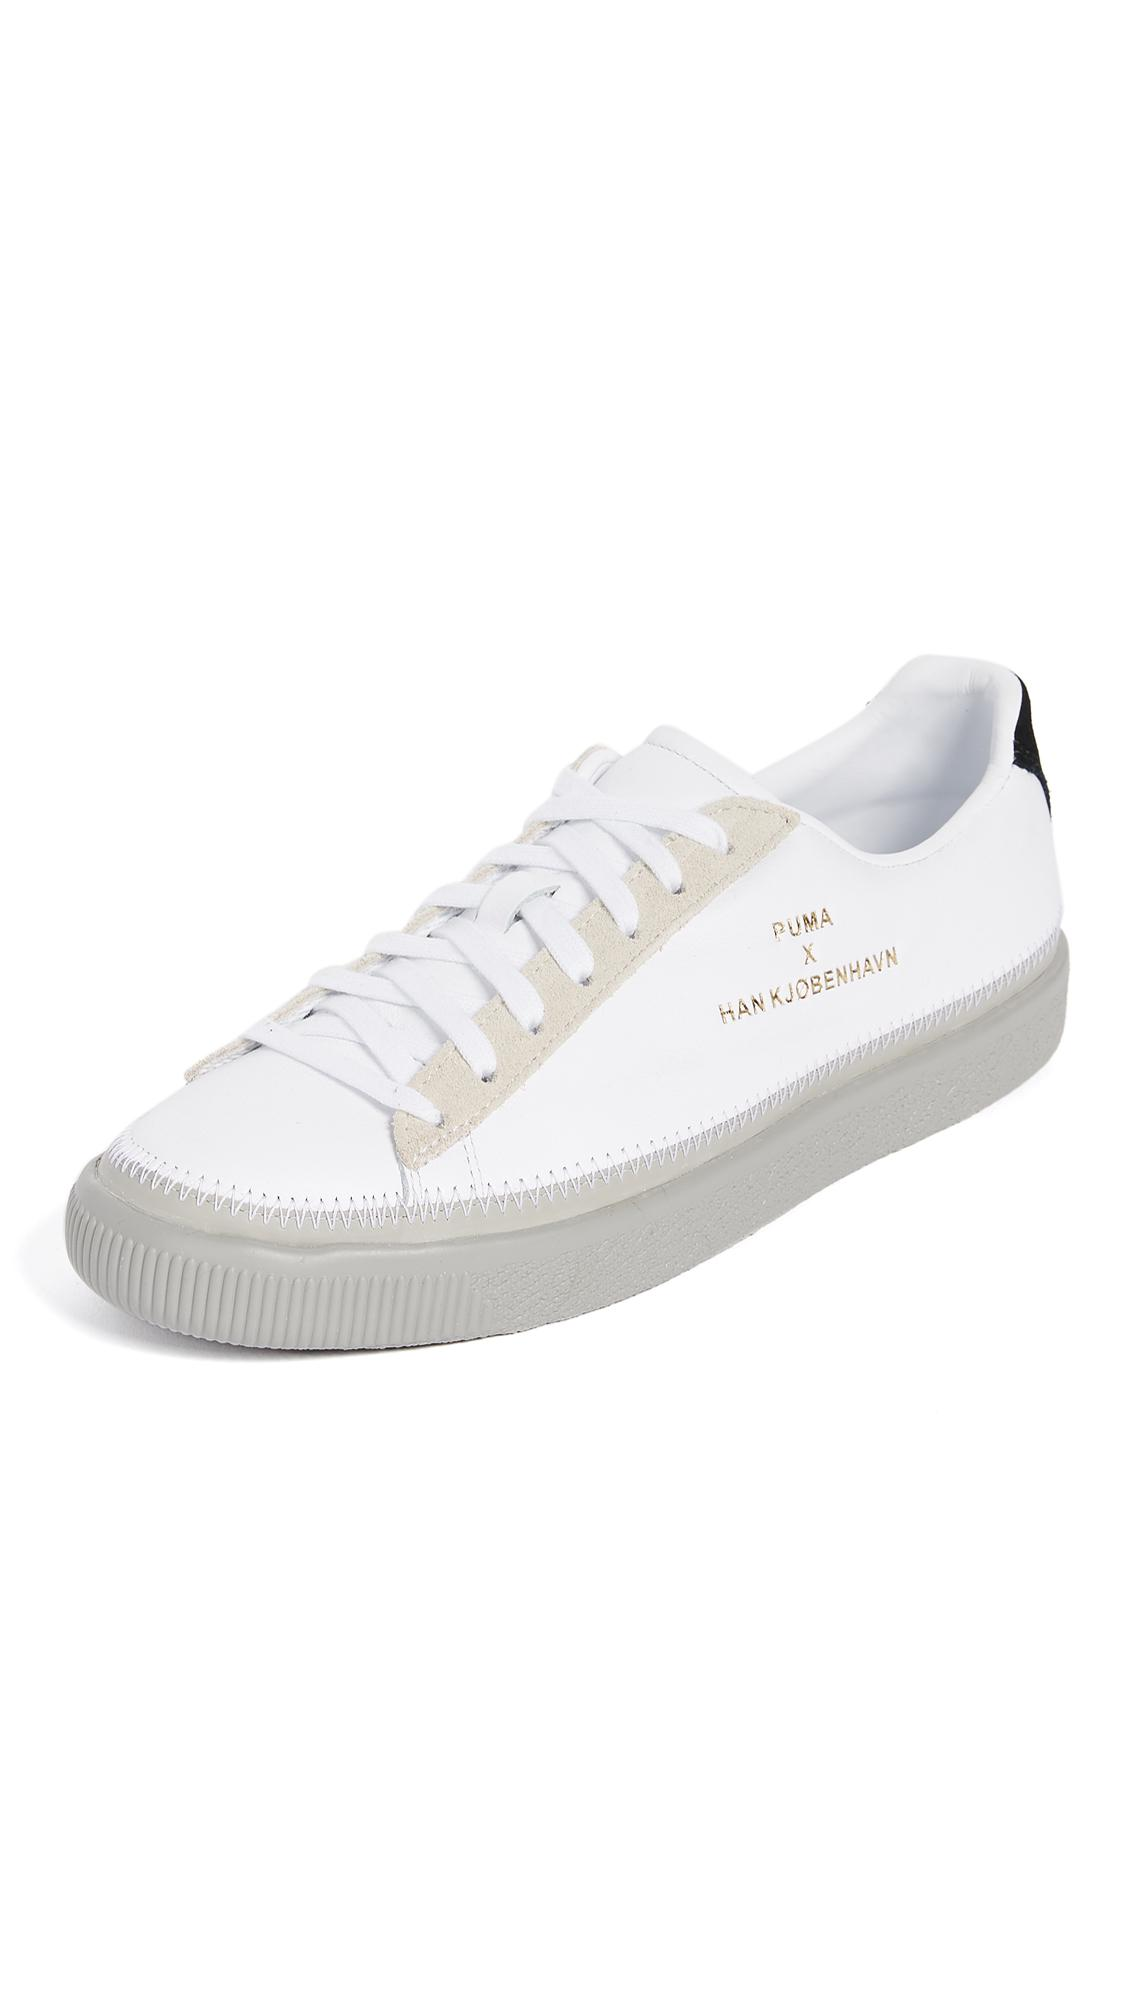 98482aae99a Lyst - Puma Select X Han Kjobenhavn Stitched Sneakers in White for Men